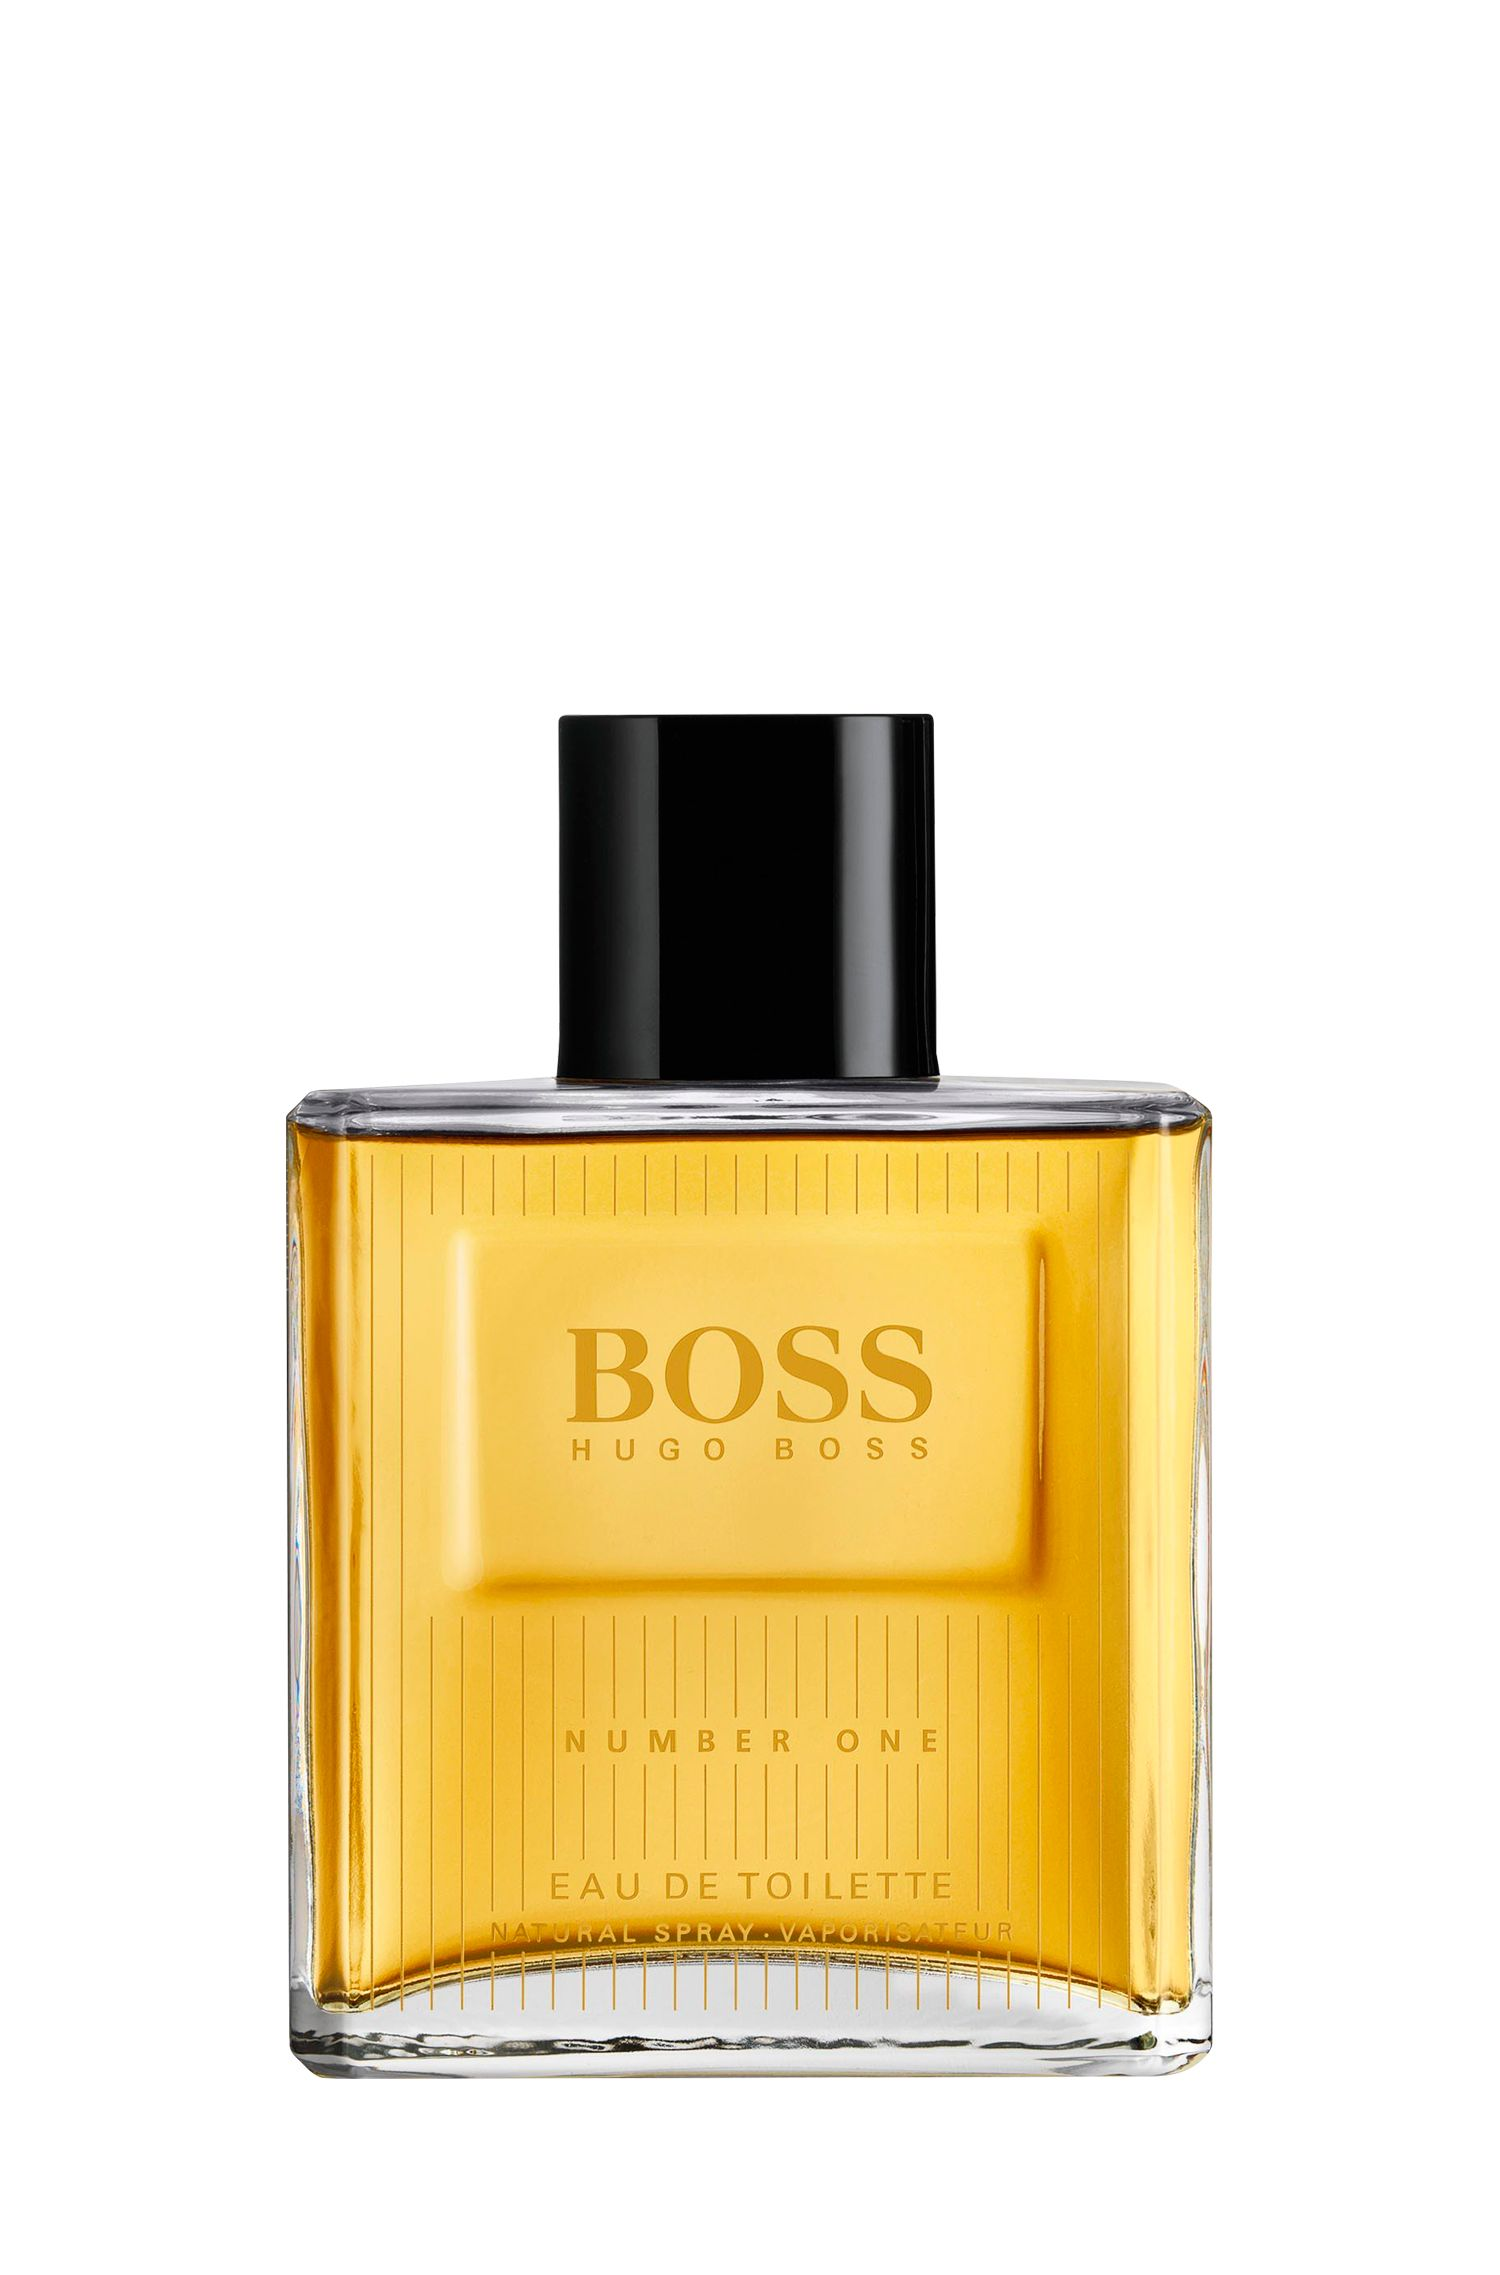 BOSS Number One eau de toilette 125ml